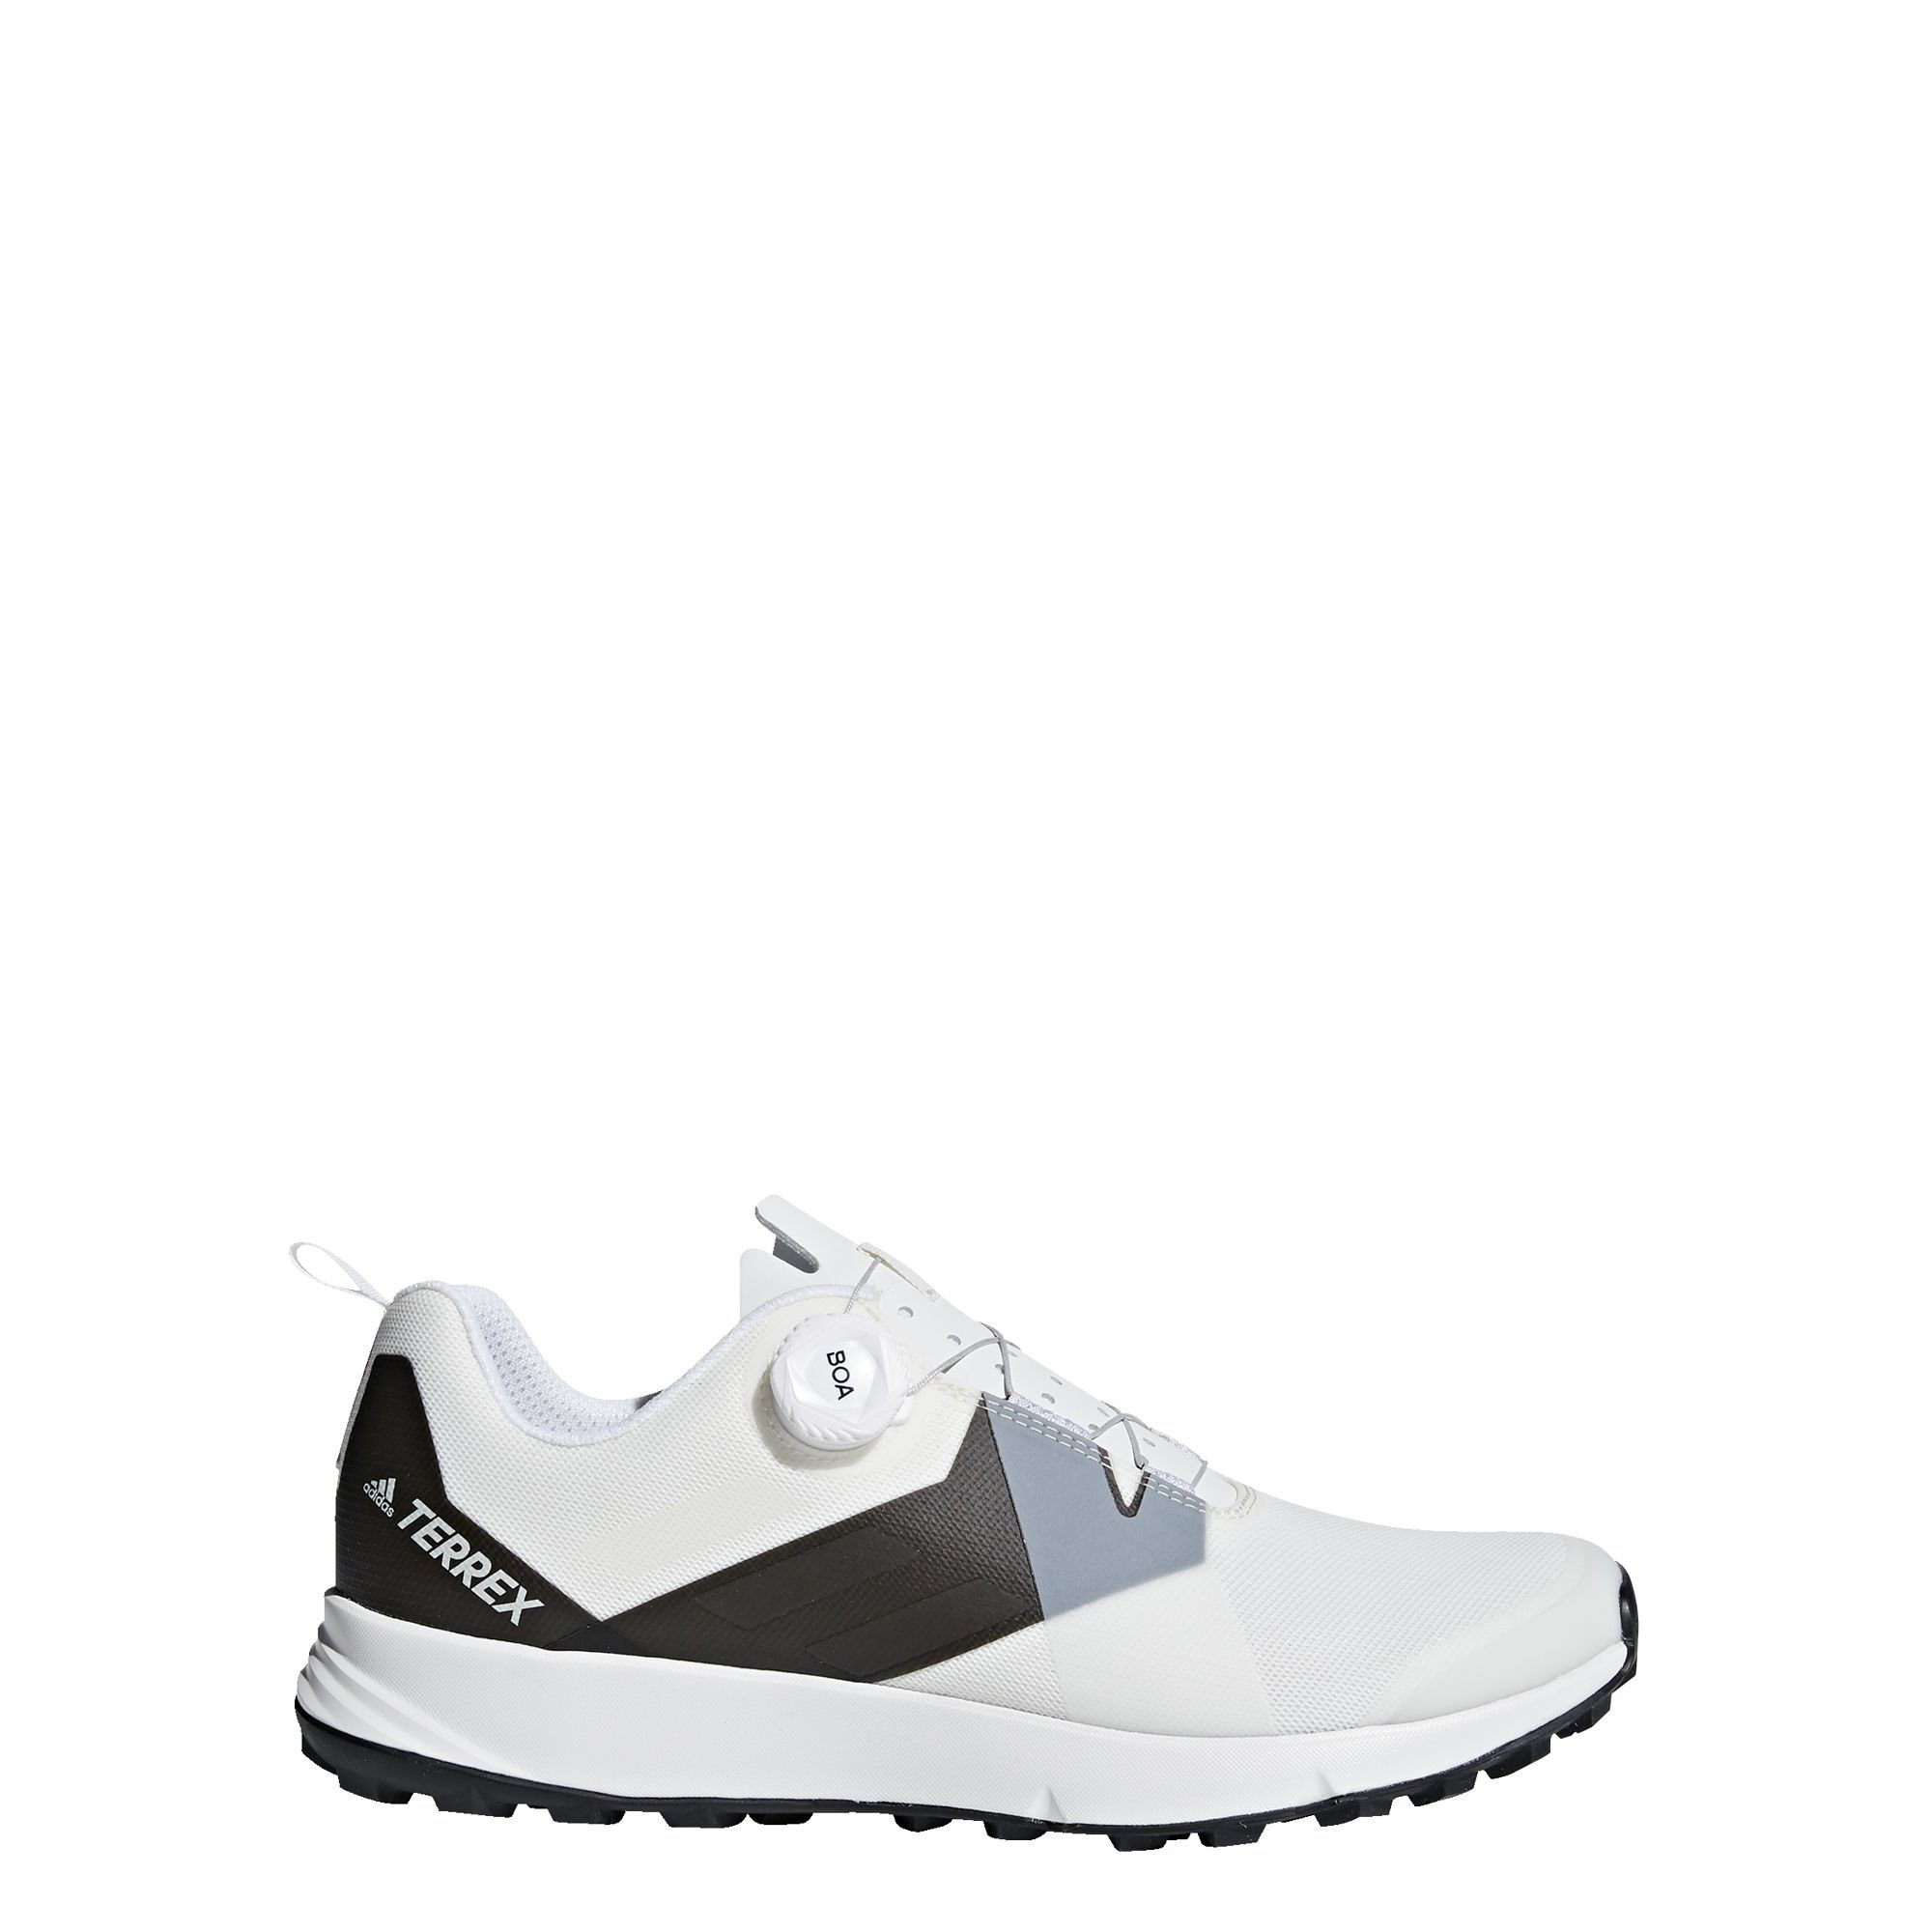 Performance Schuh« Two Online Adidas Boa Fitnessschuh KaufenOtto »terrex E9WH2ID